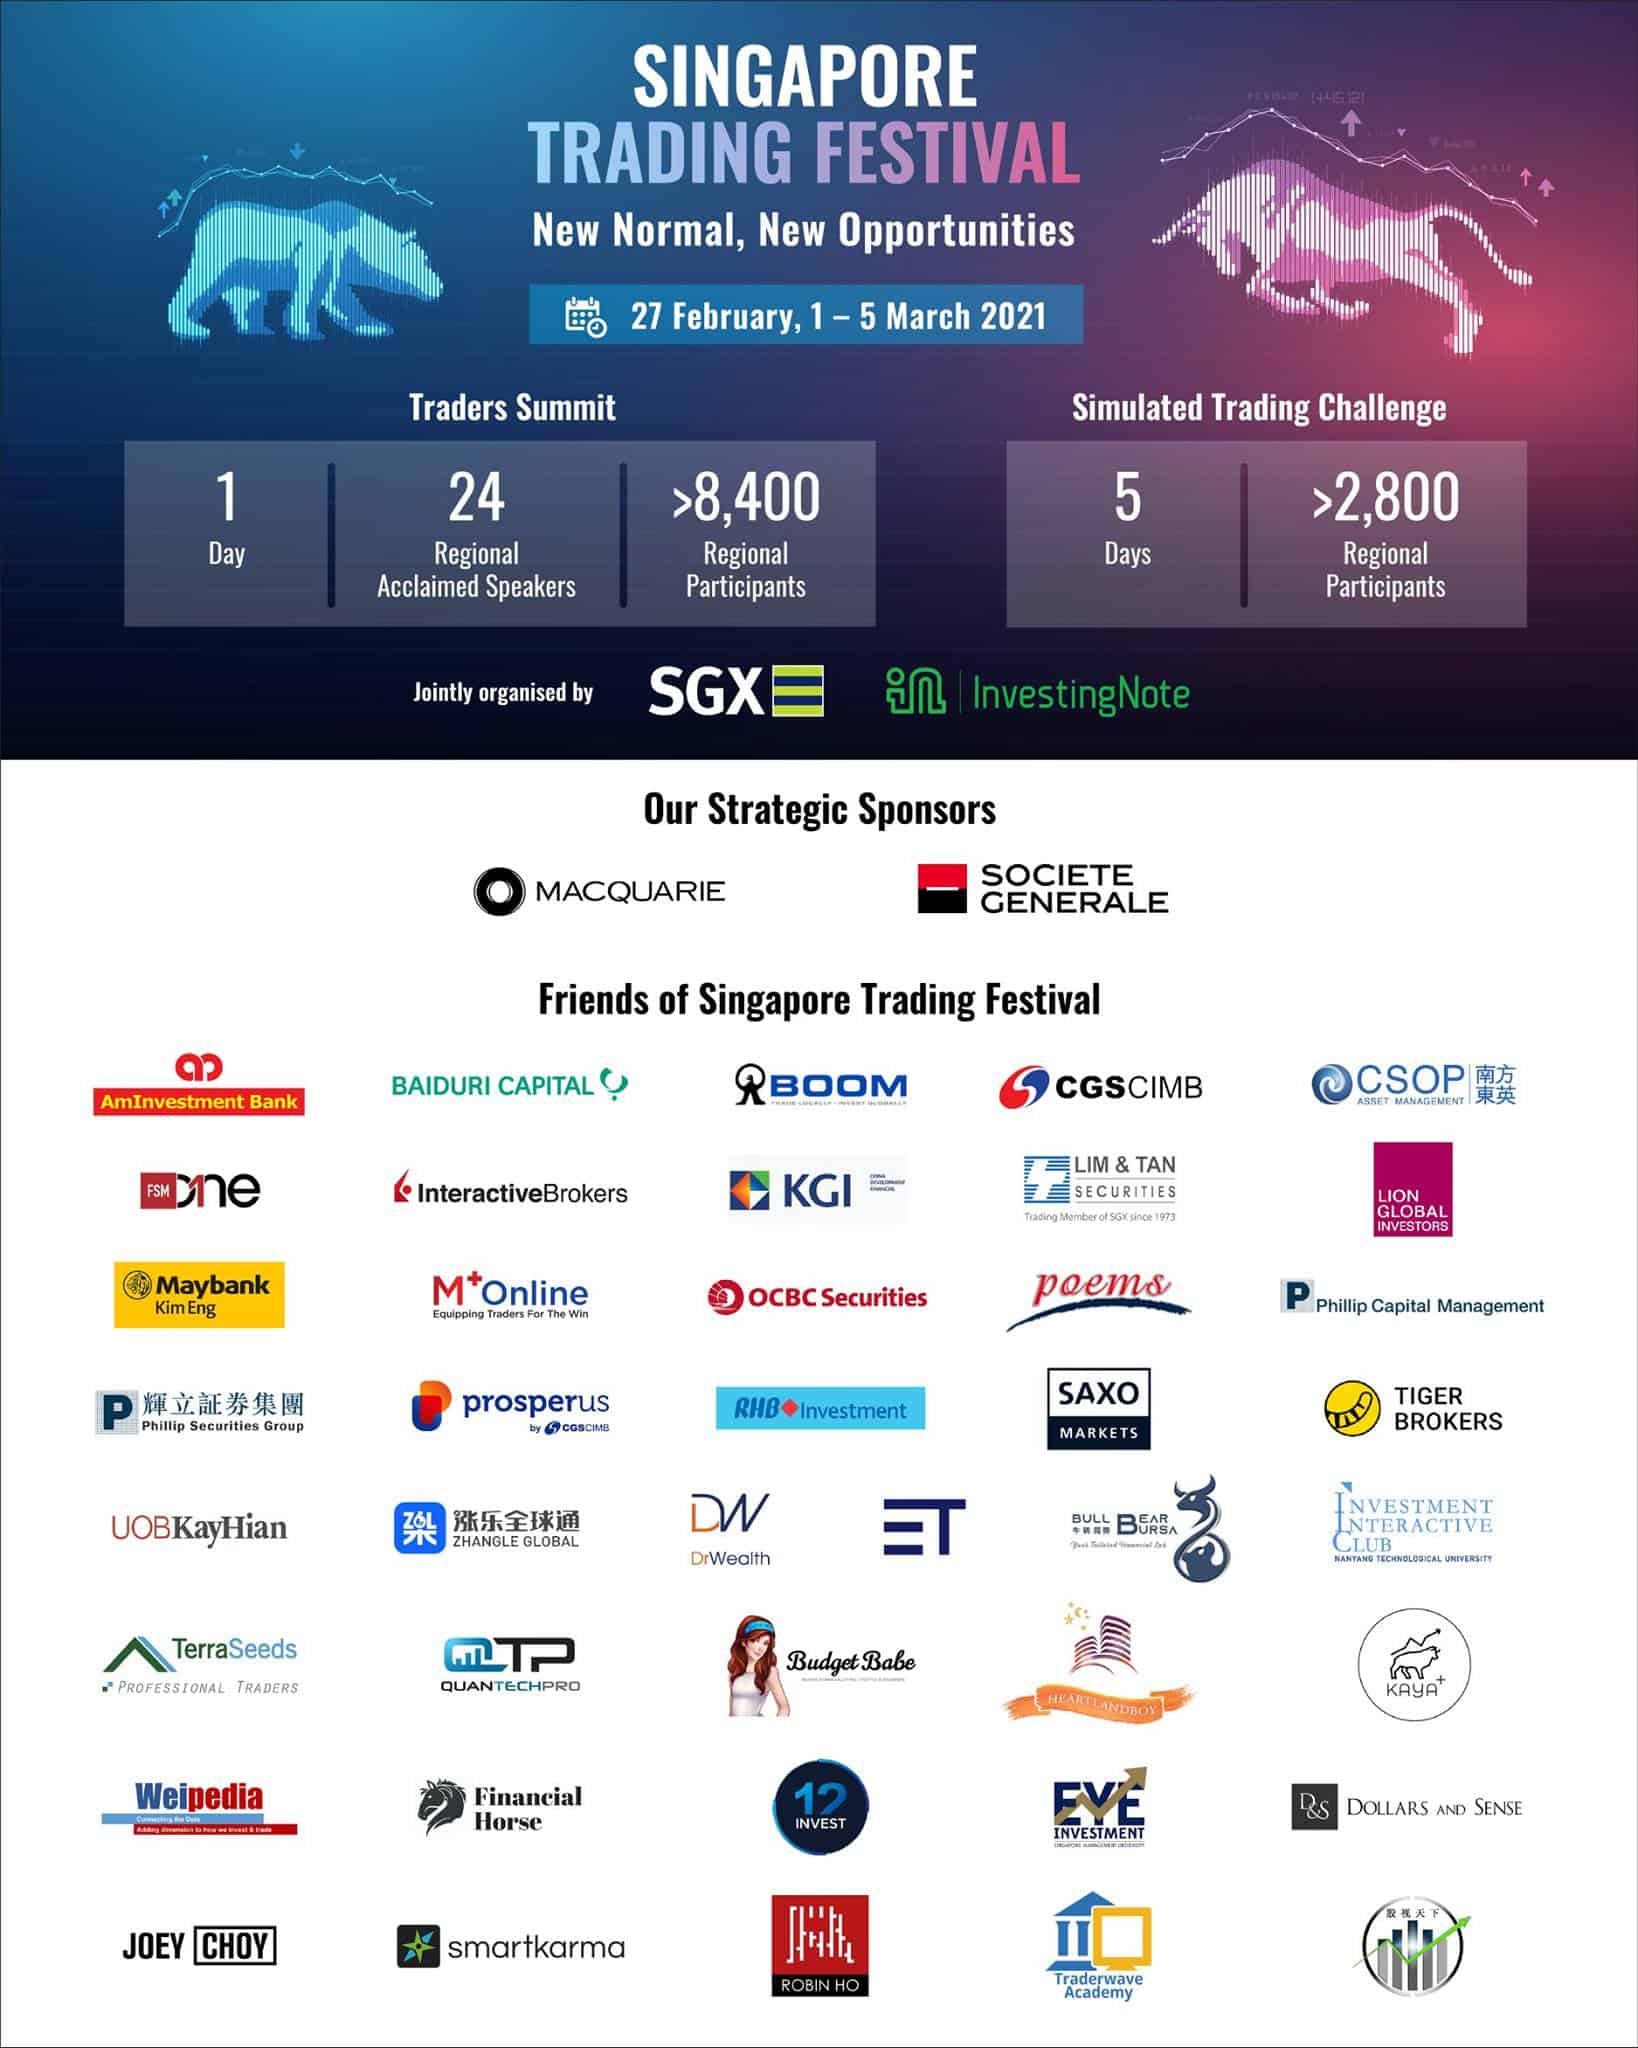 A big thank you to all our Sponsors and Friends of Singapore Trading Festival!